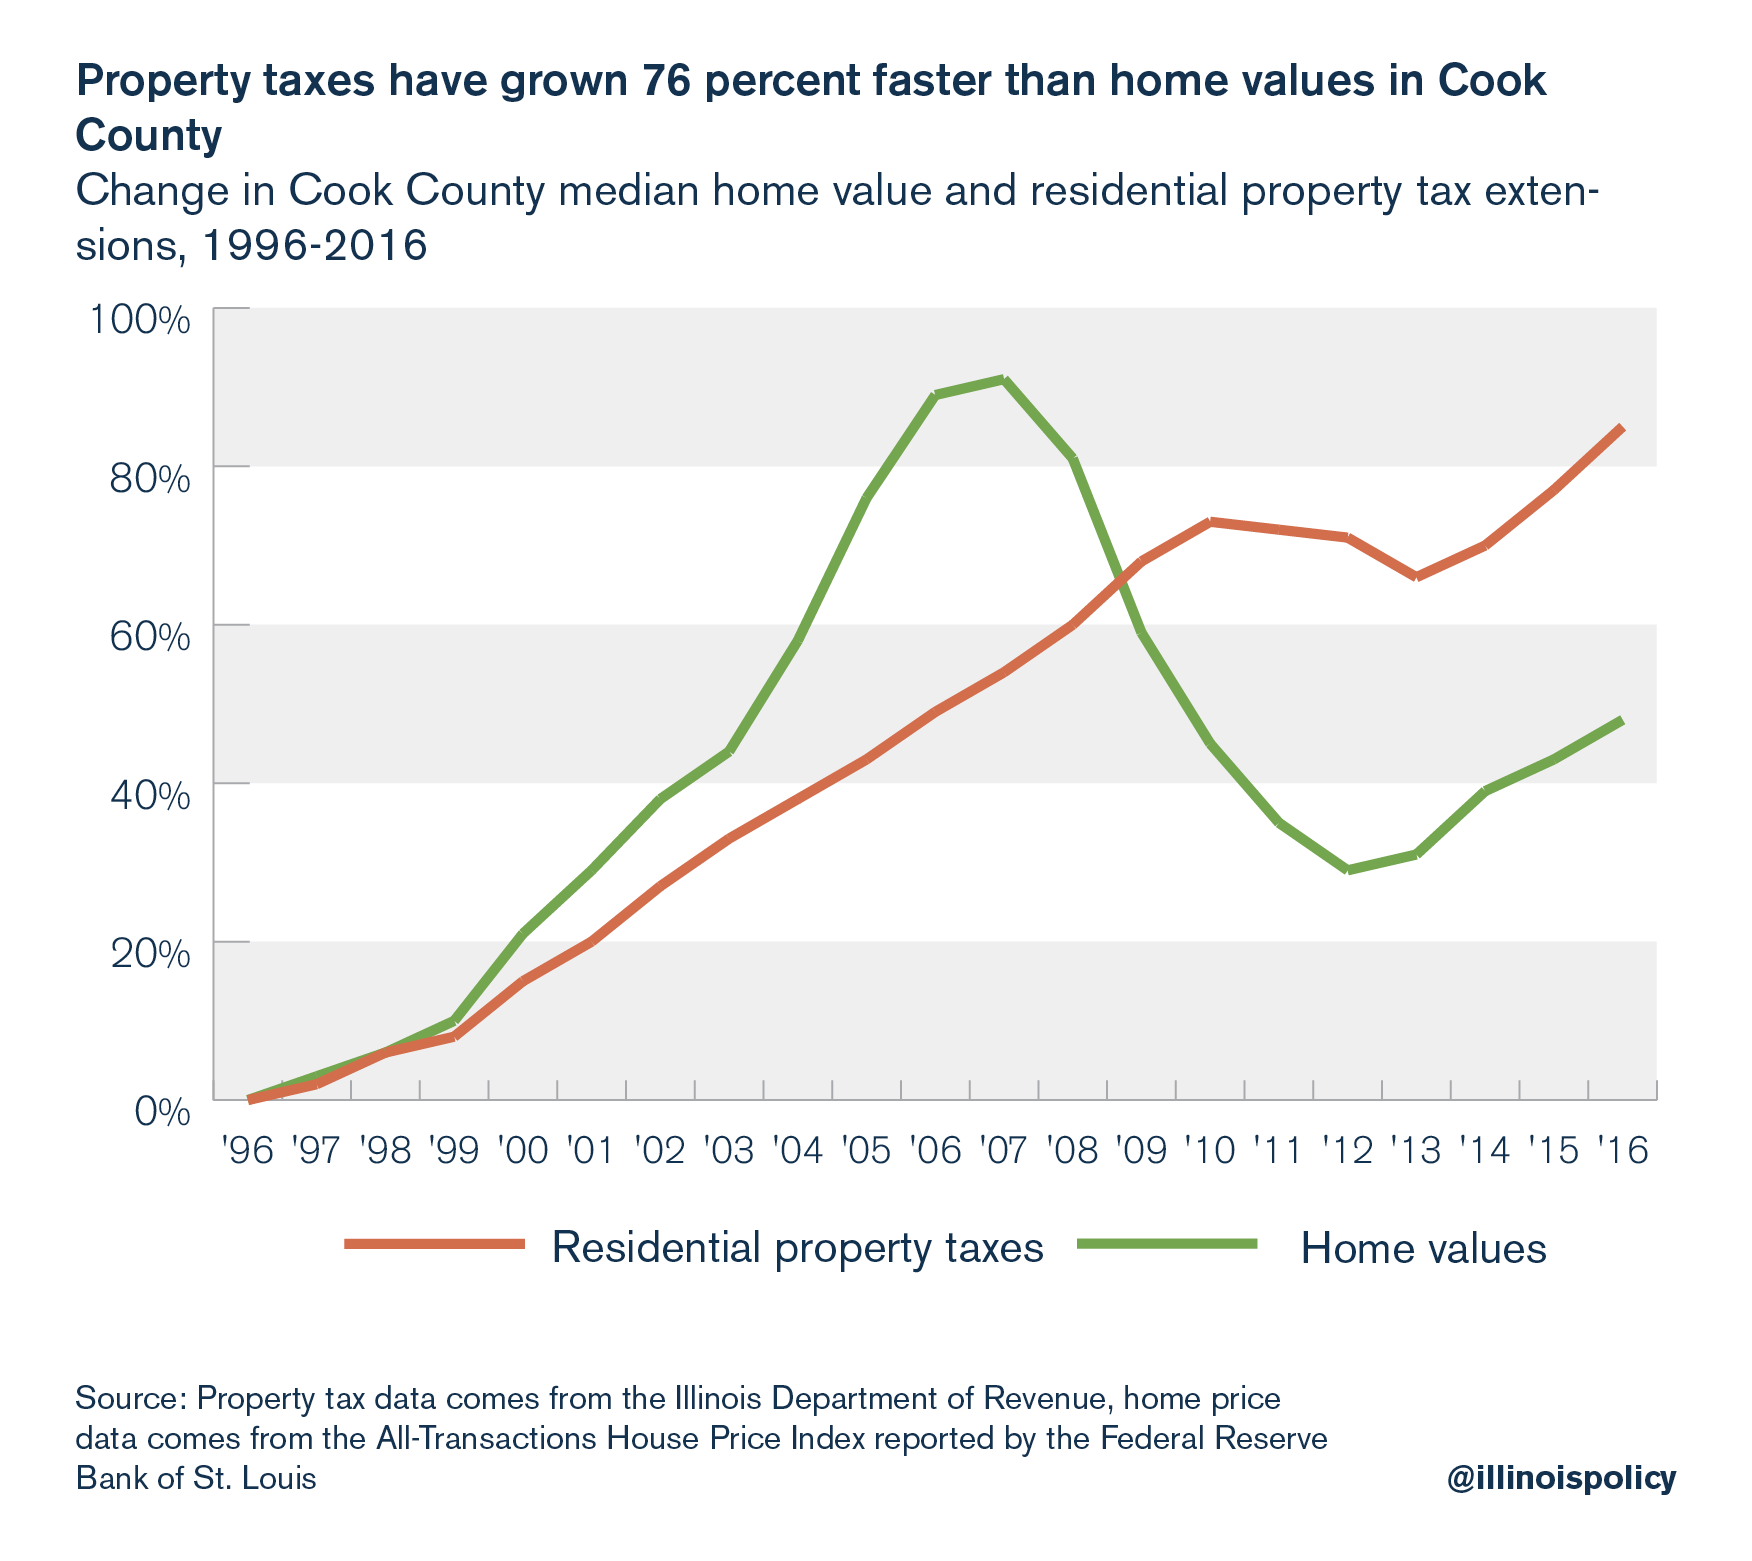 Property taxes have grown 76 percent faster than home values in Cook County